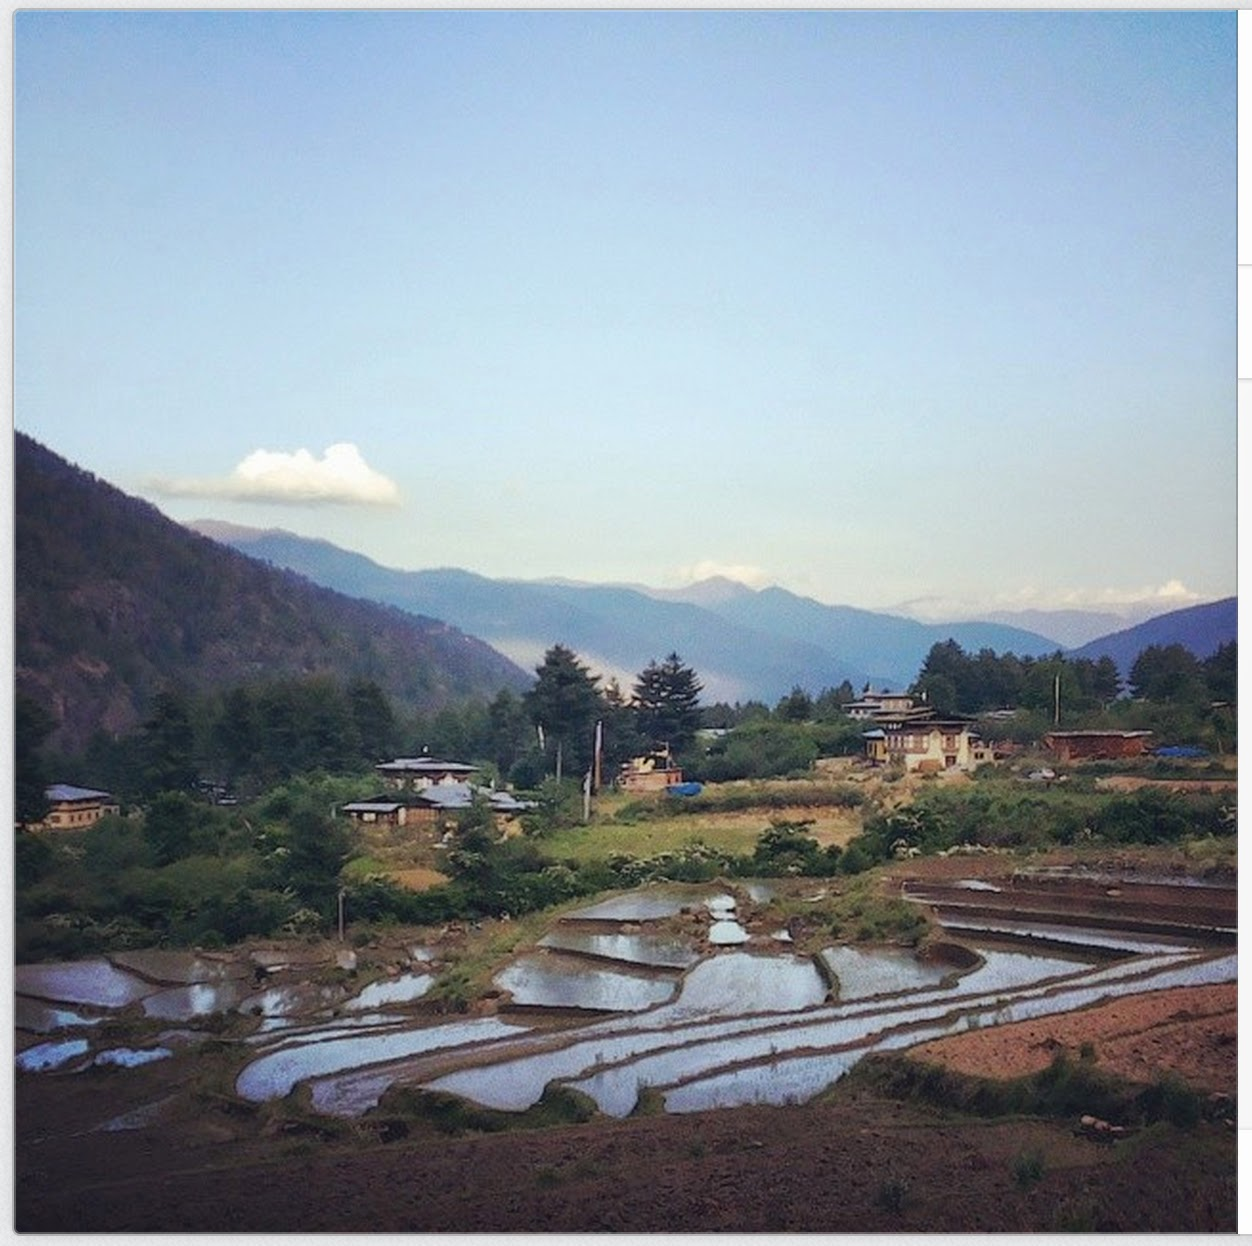 Rice Fields of Paro, Bhutan